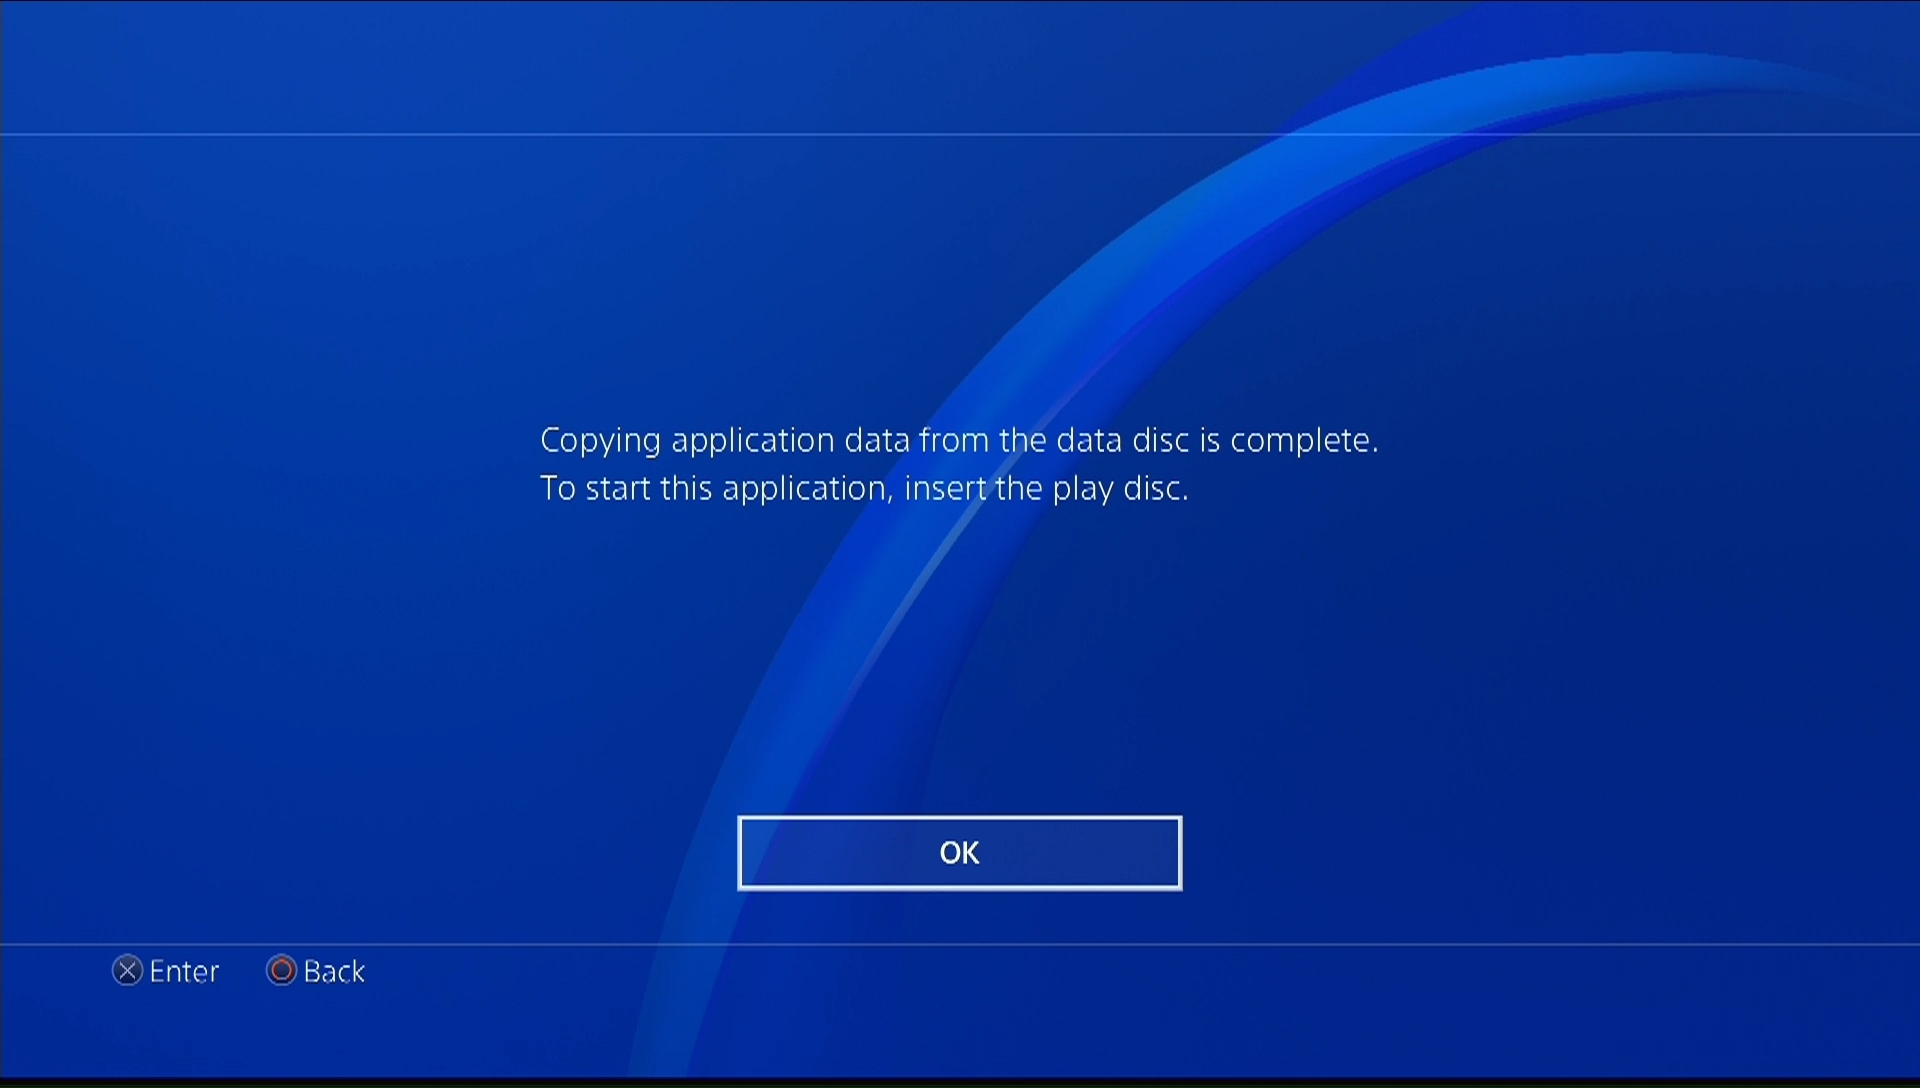 PS4_Please_Insert_Play_Disc.jpg